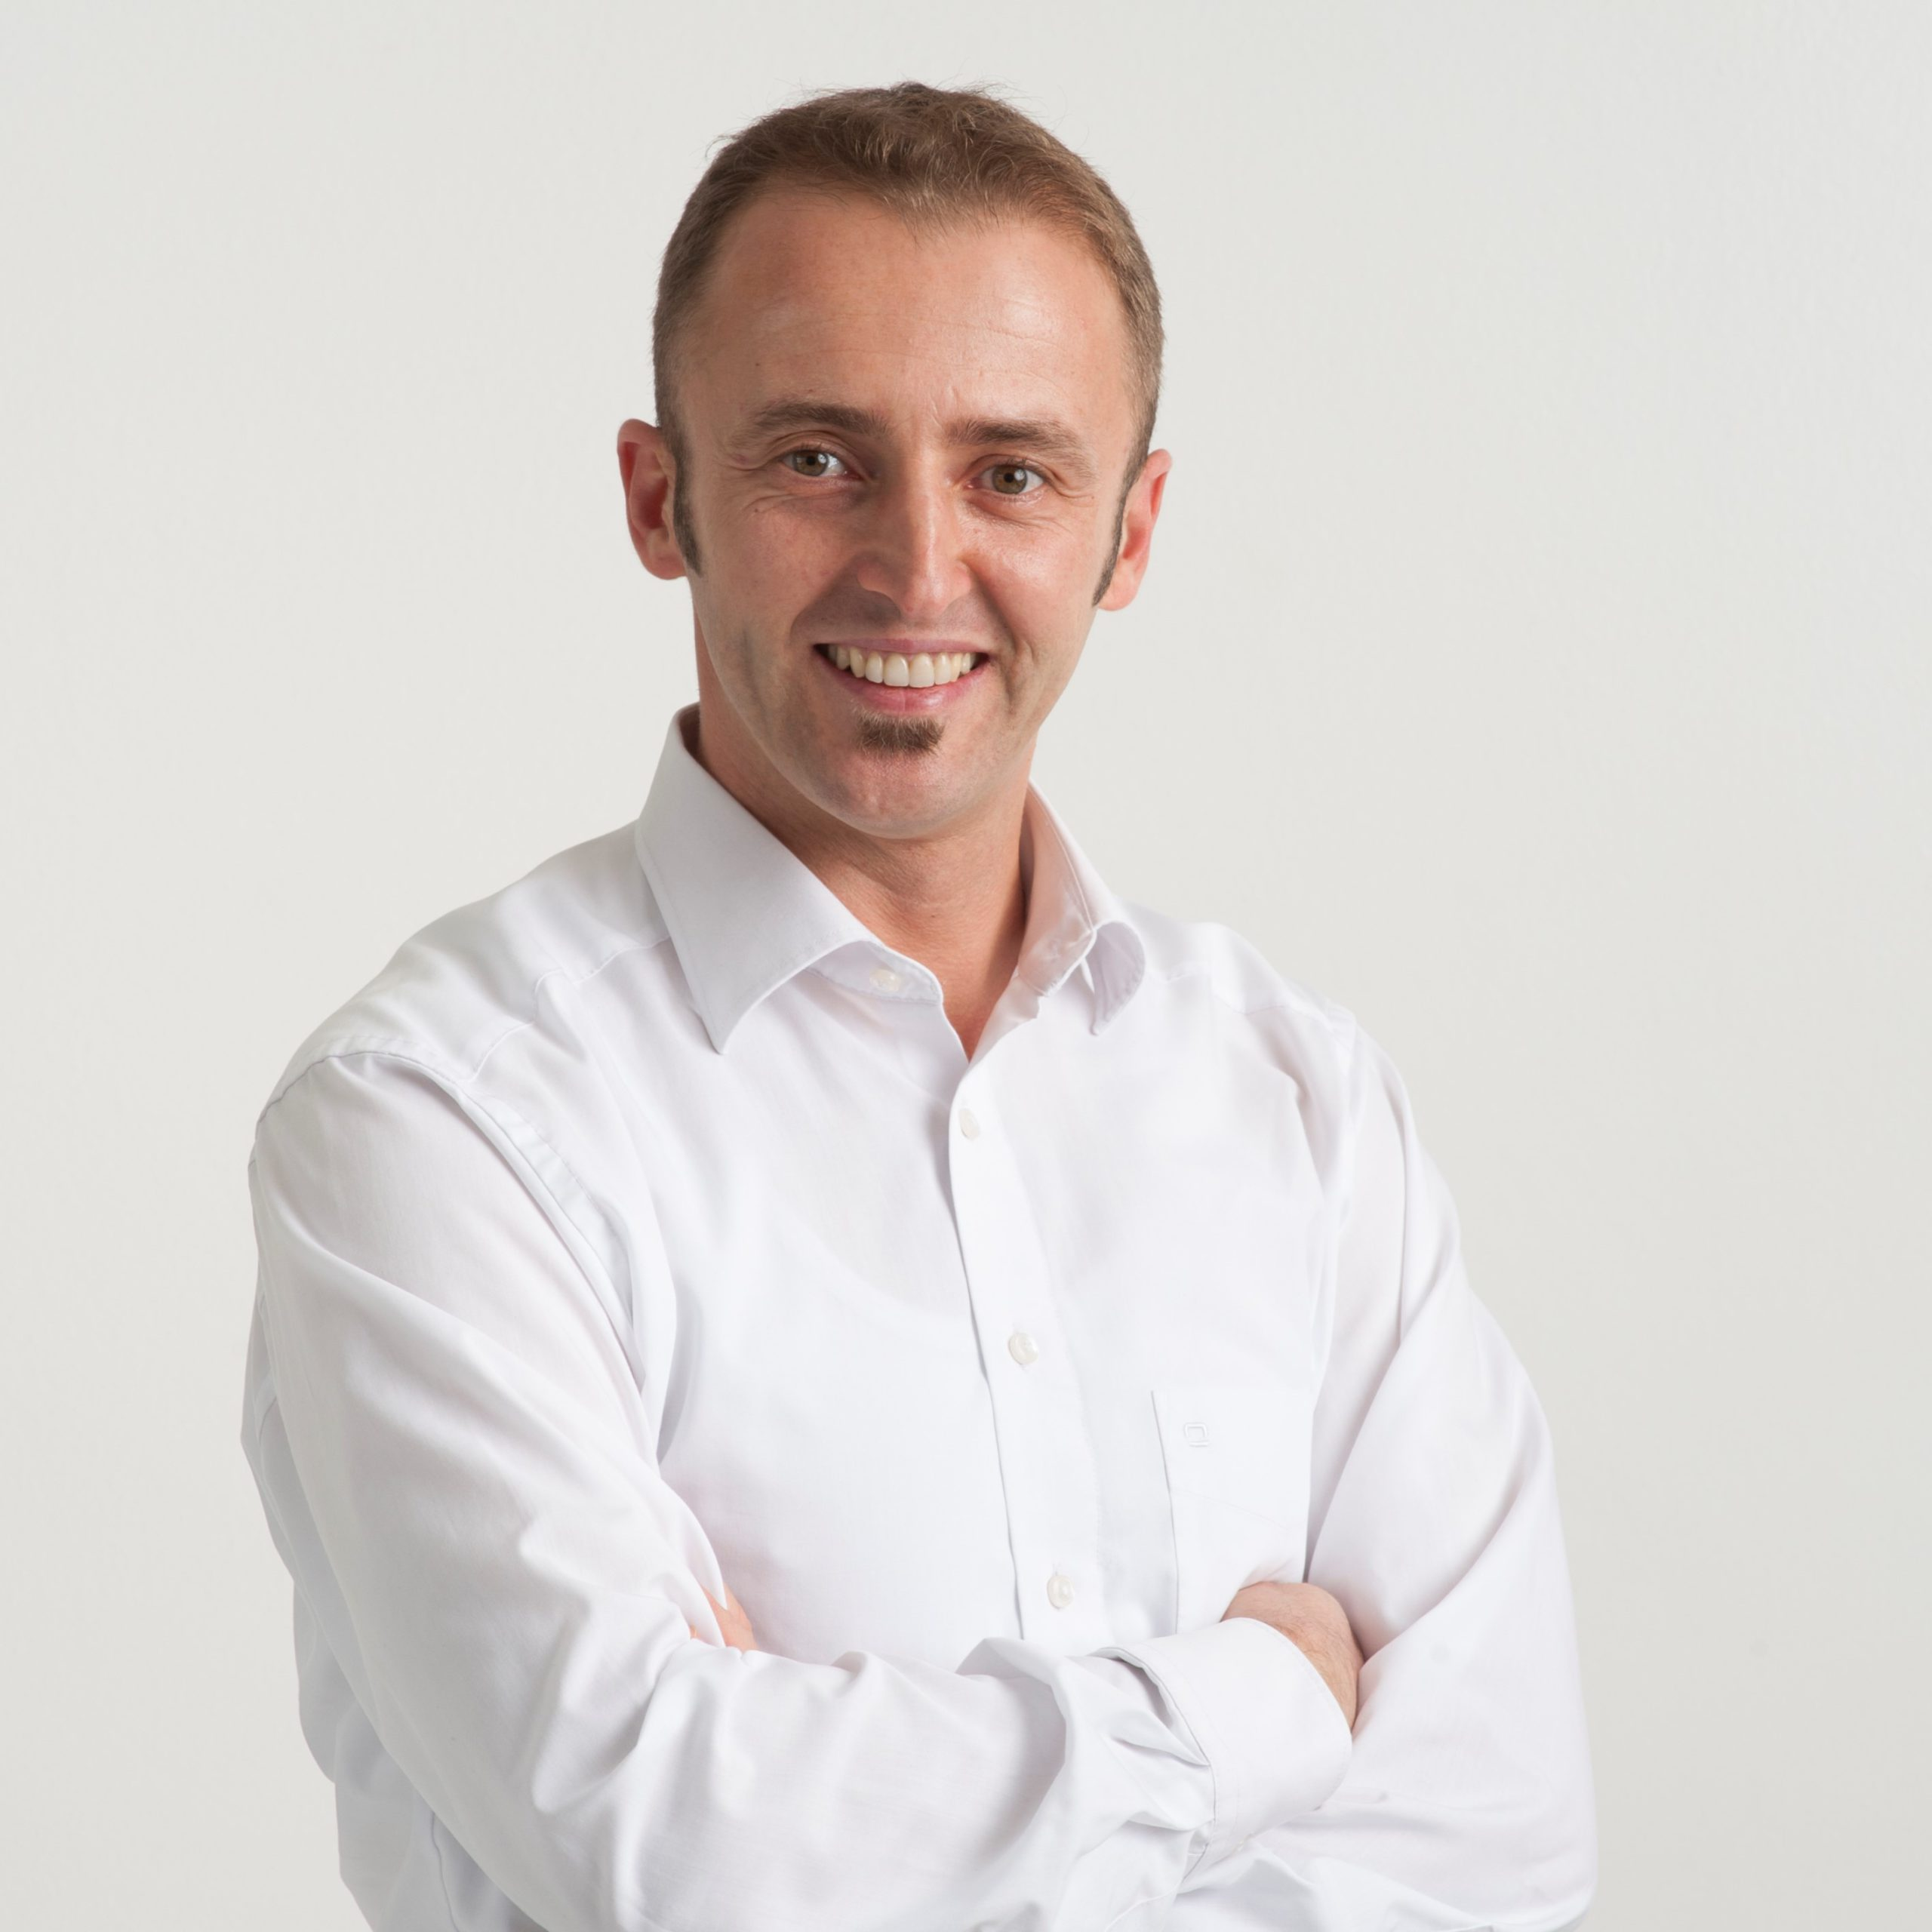 Image of Darko Kopčić, Sales Manager at PROC-IT, a valantic company